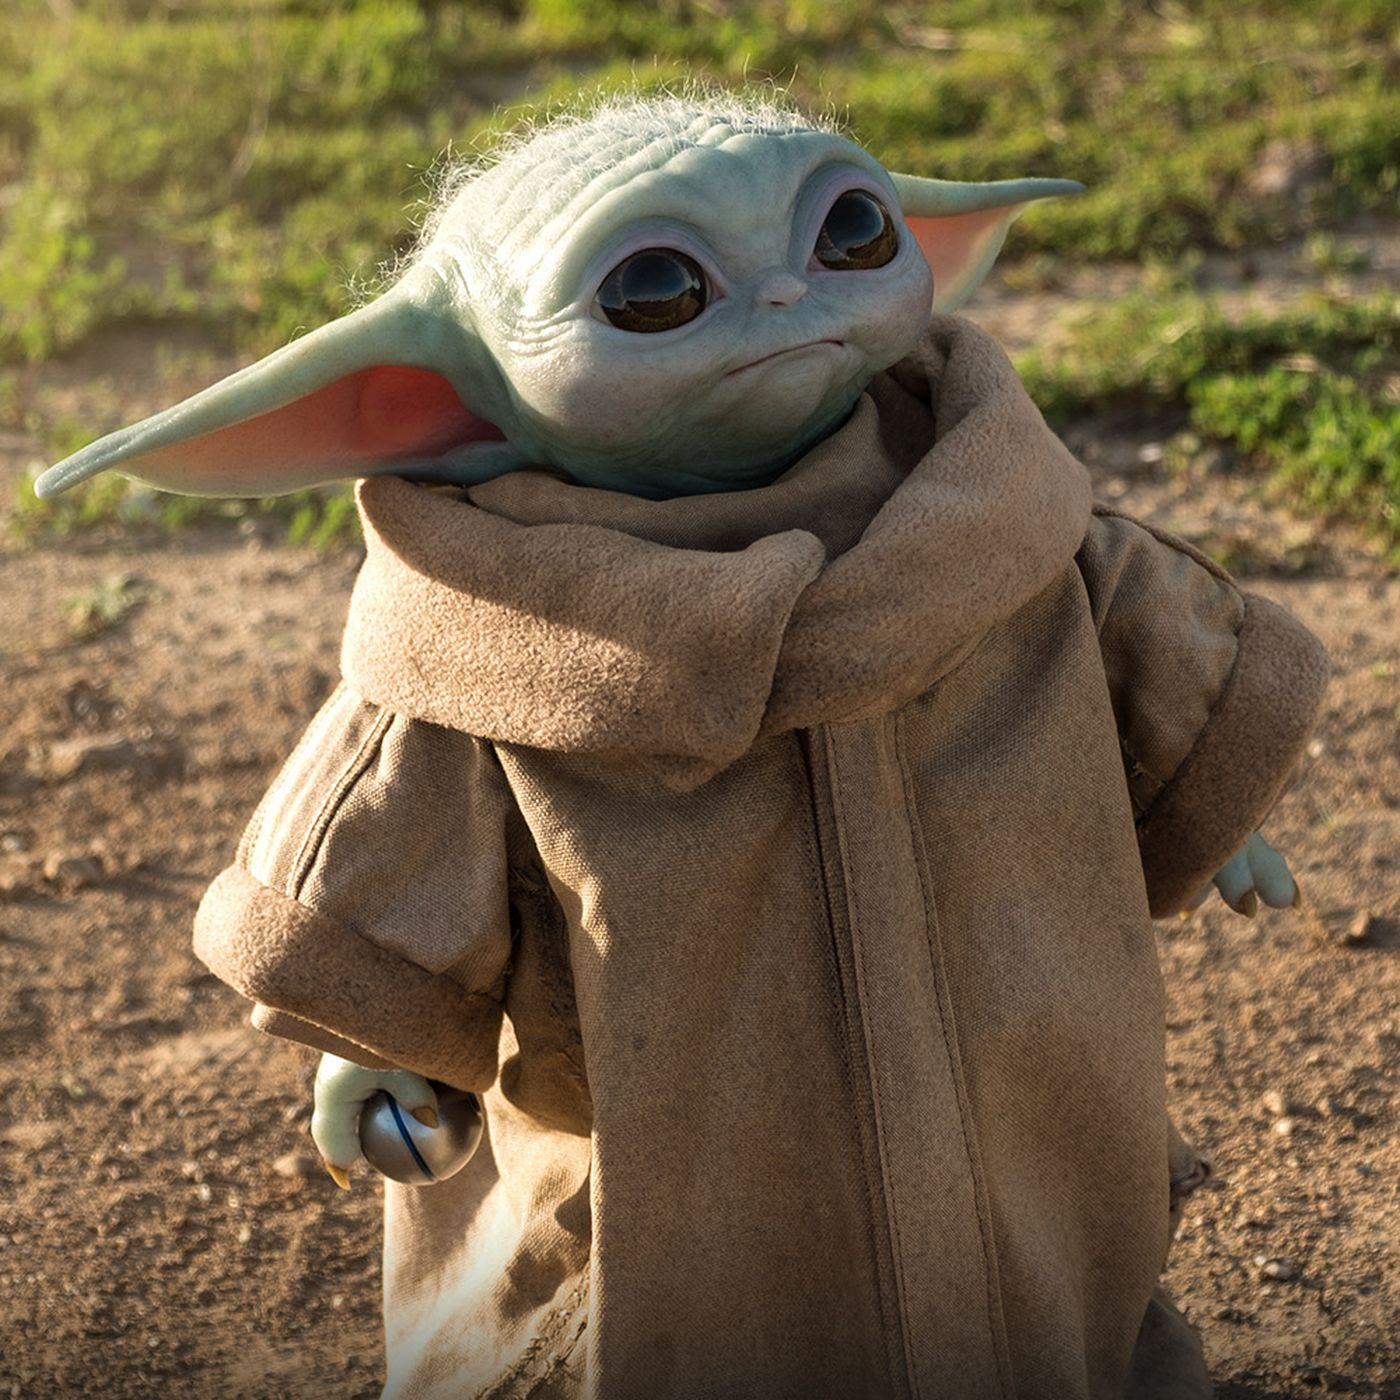 Baby Yoda S Official Life Size Figure From The Mandalorian Is Here Polygon